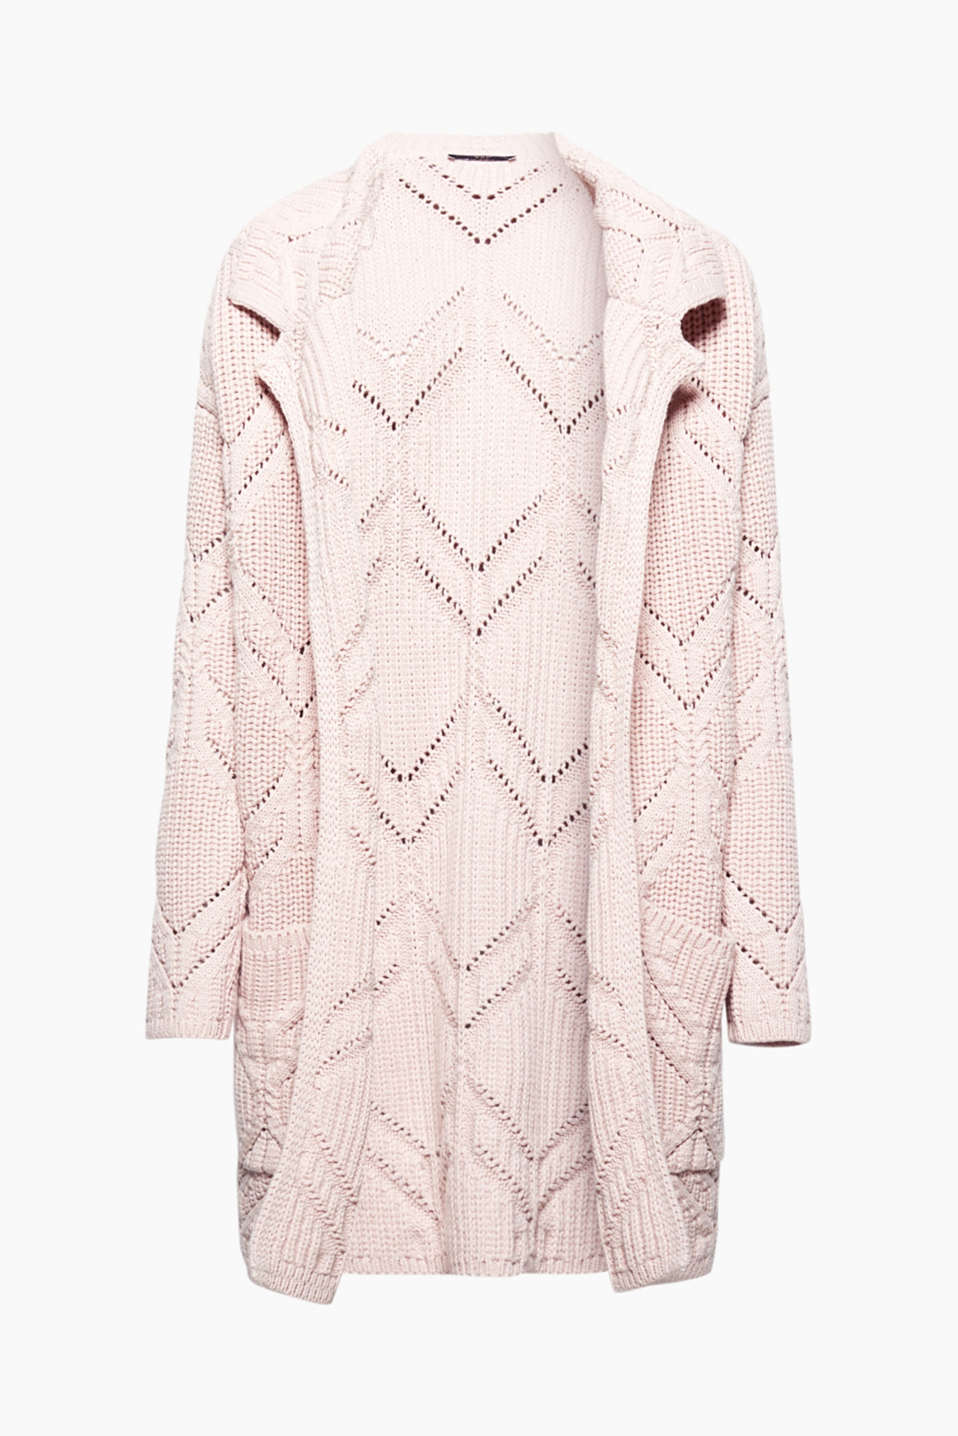 This soft, chunky knit cardigan is the perfect topper for cold winter weather with its striking cable pattern!